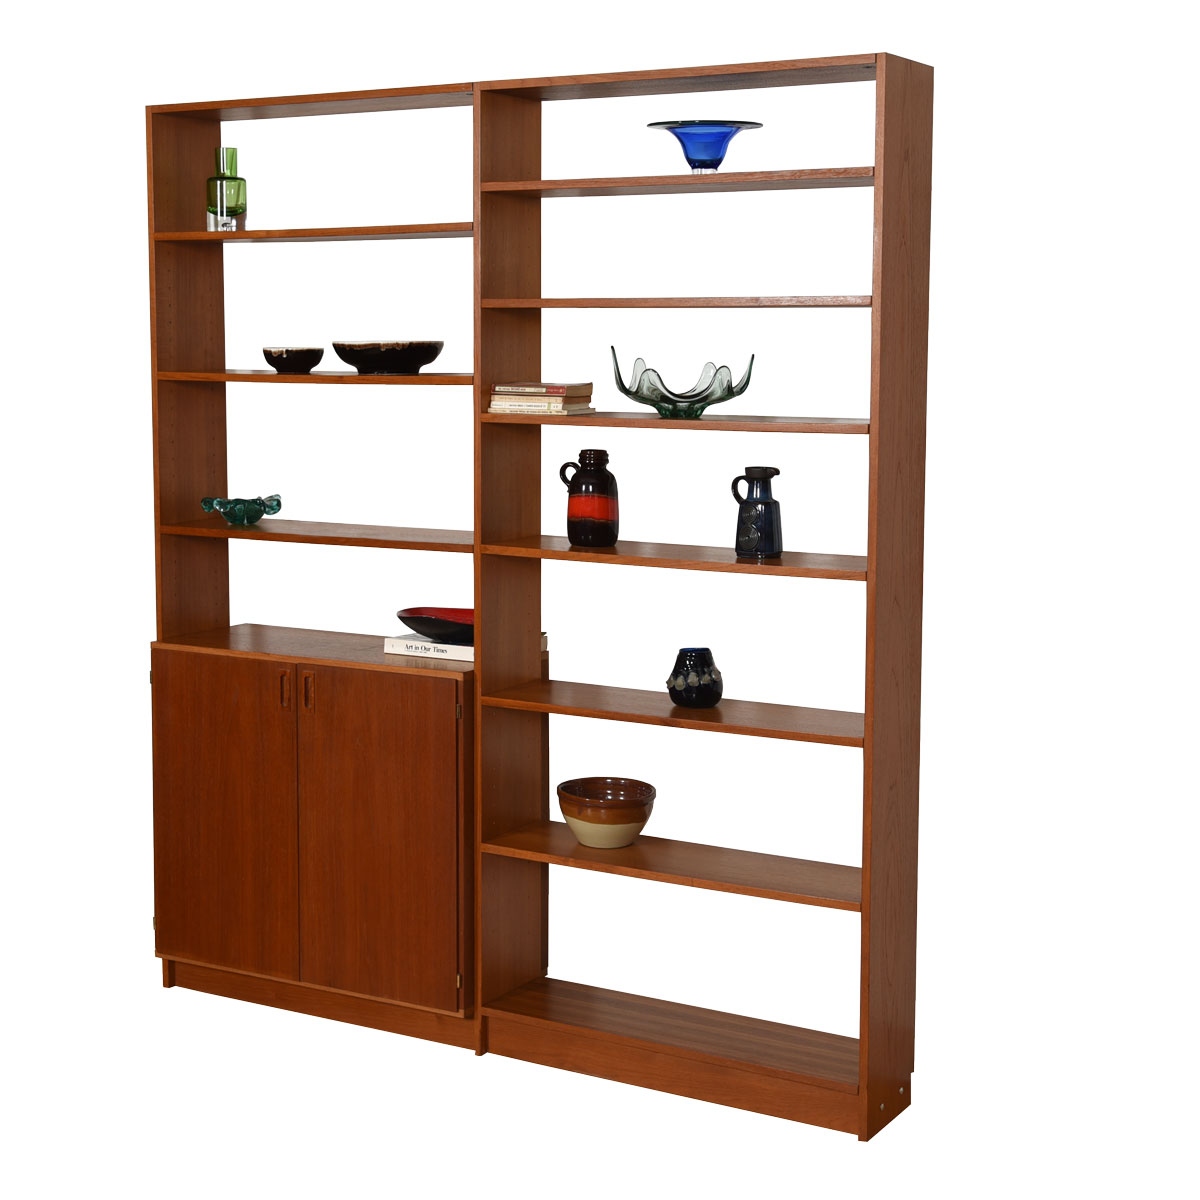 Danish Teak Bookcase Wall Unit w/ Adjustable Storage Cabinet